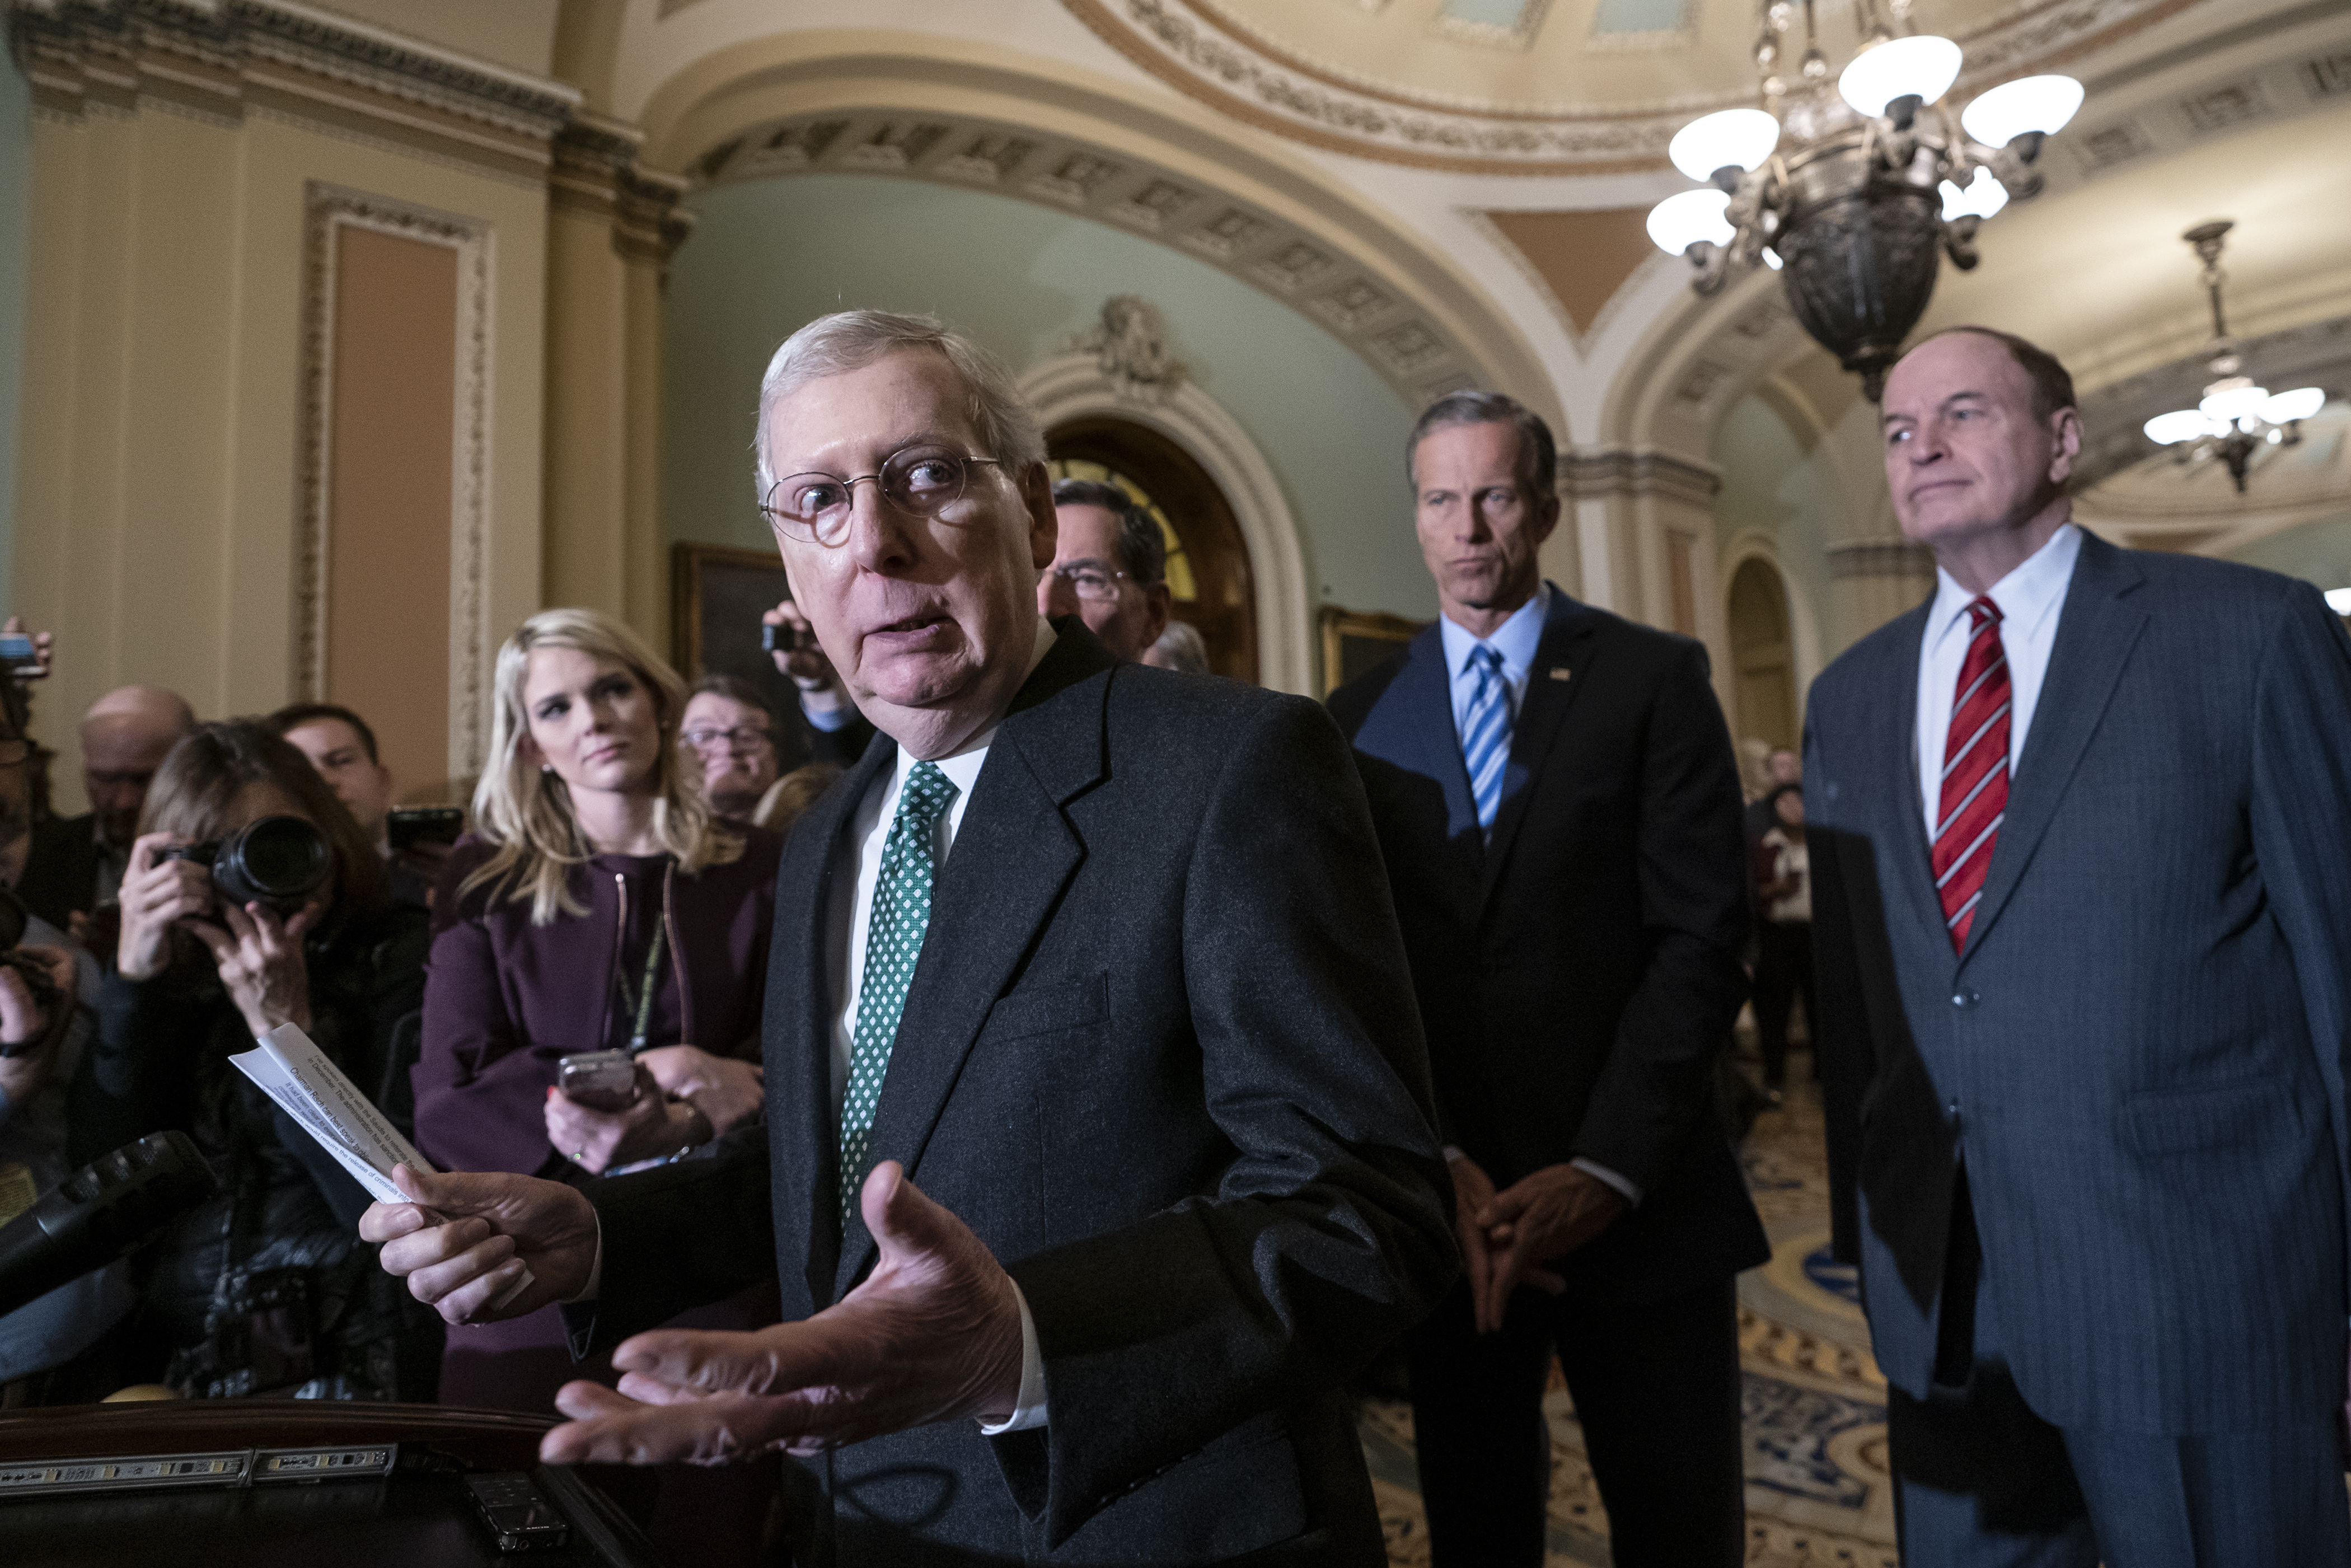 Senate Majority Leader Mitch McConnell, R-Ky., left, speaks to reporters at the Capitol in Washington, Feb. 12, 2019.